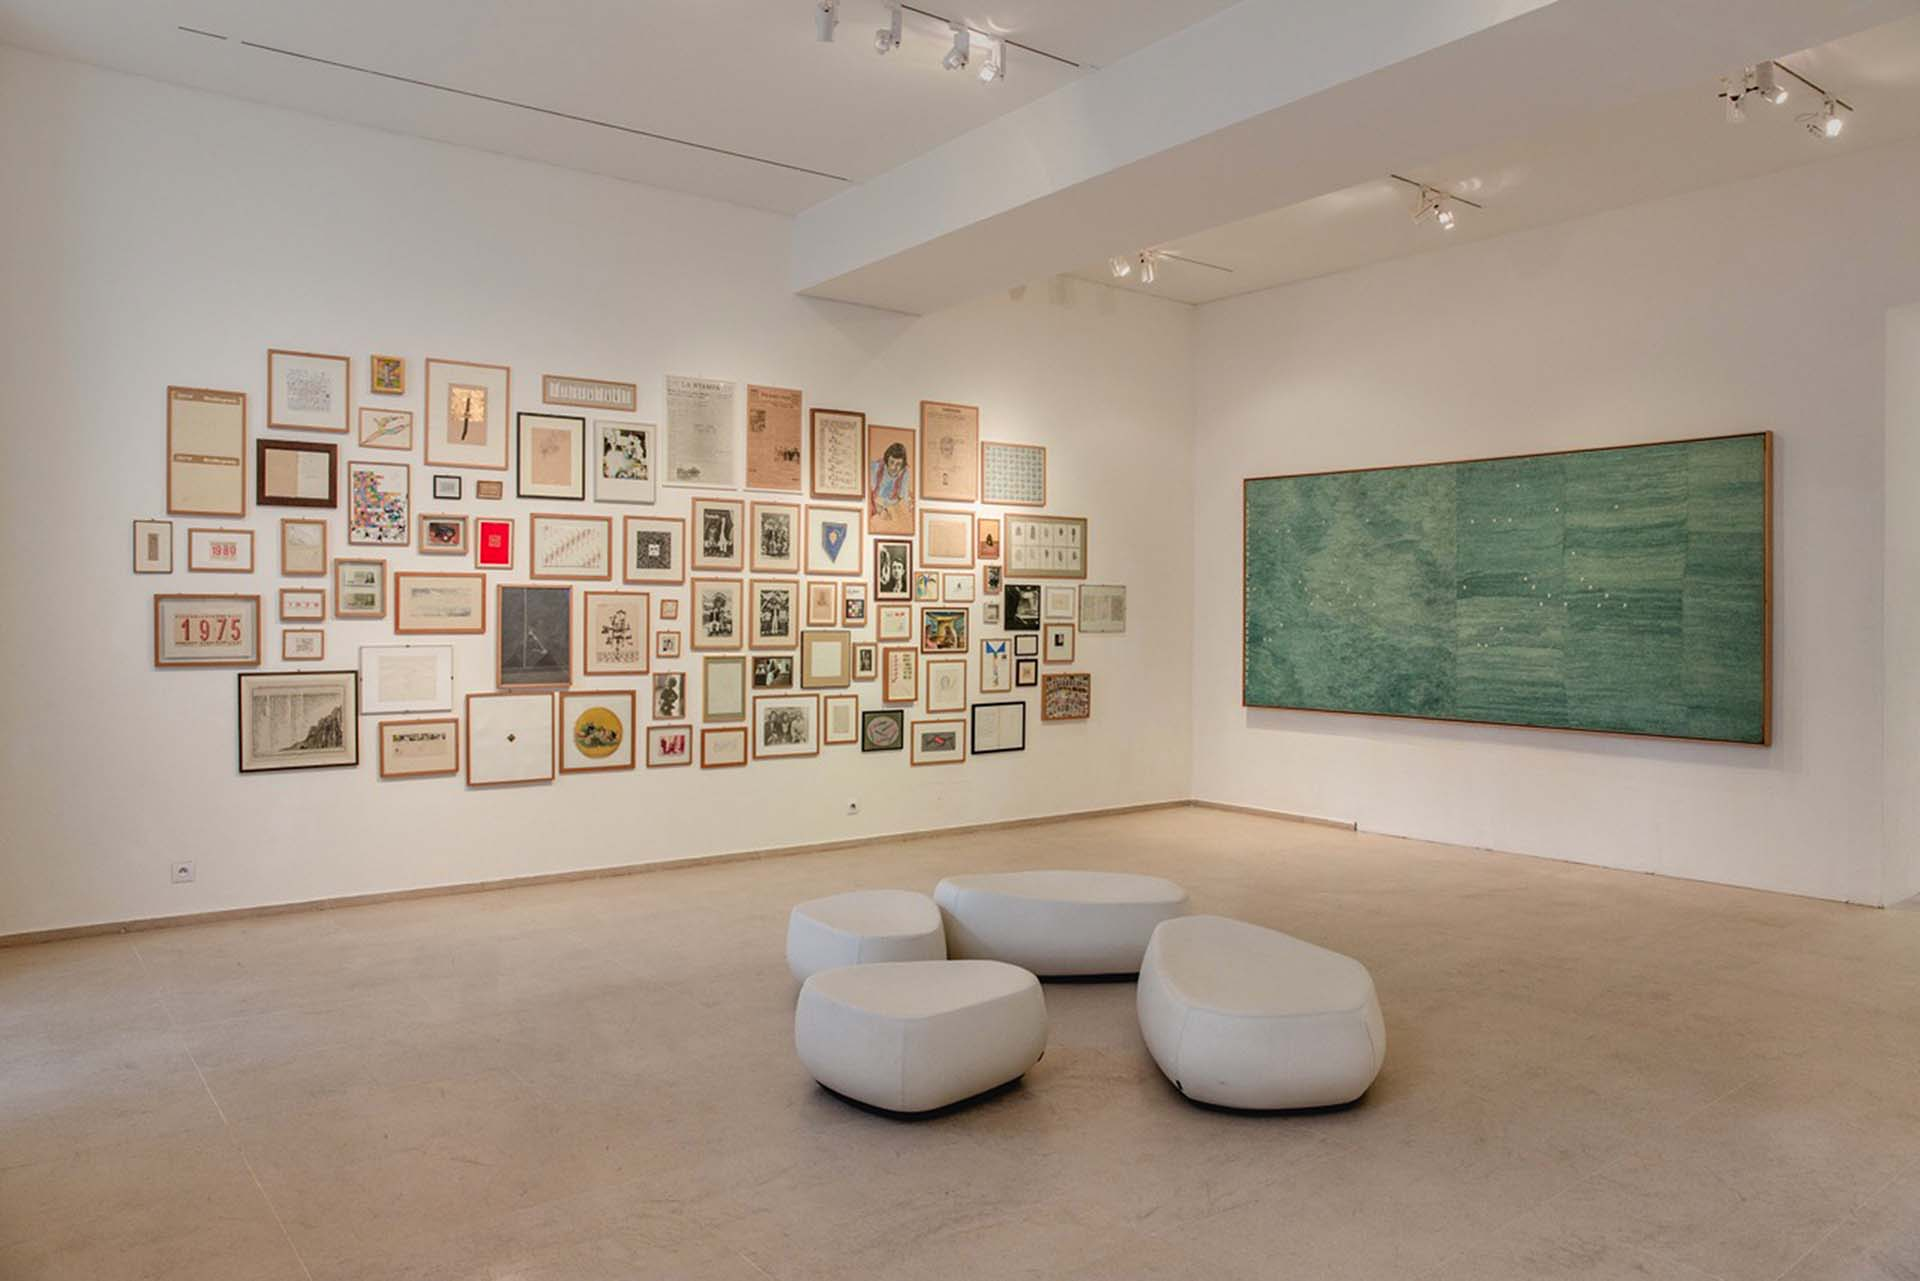 Exposition-Alighiero-Boetti-2017-Tornabuoni-Art-Paris-Courtesy-Tornabuoni-Art_2